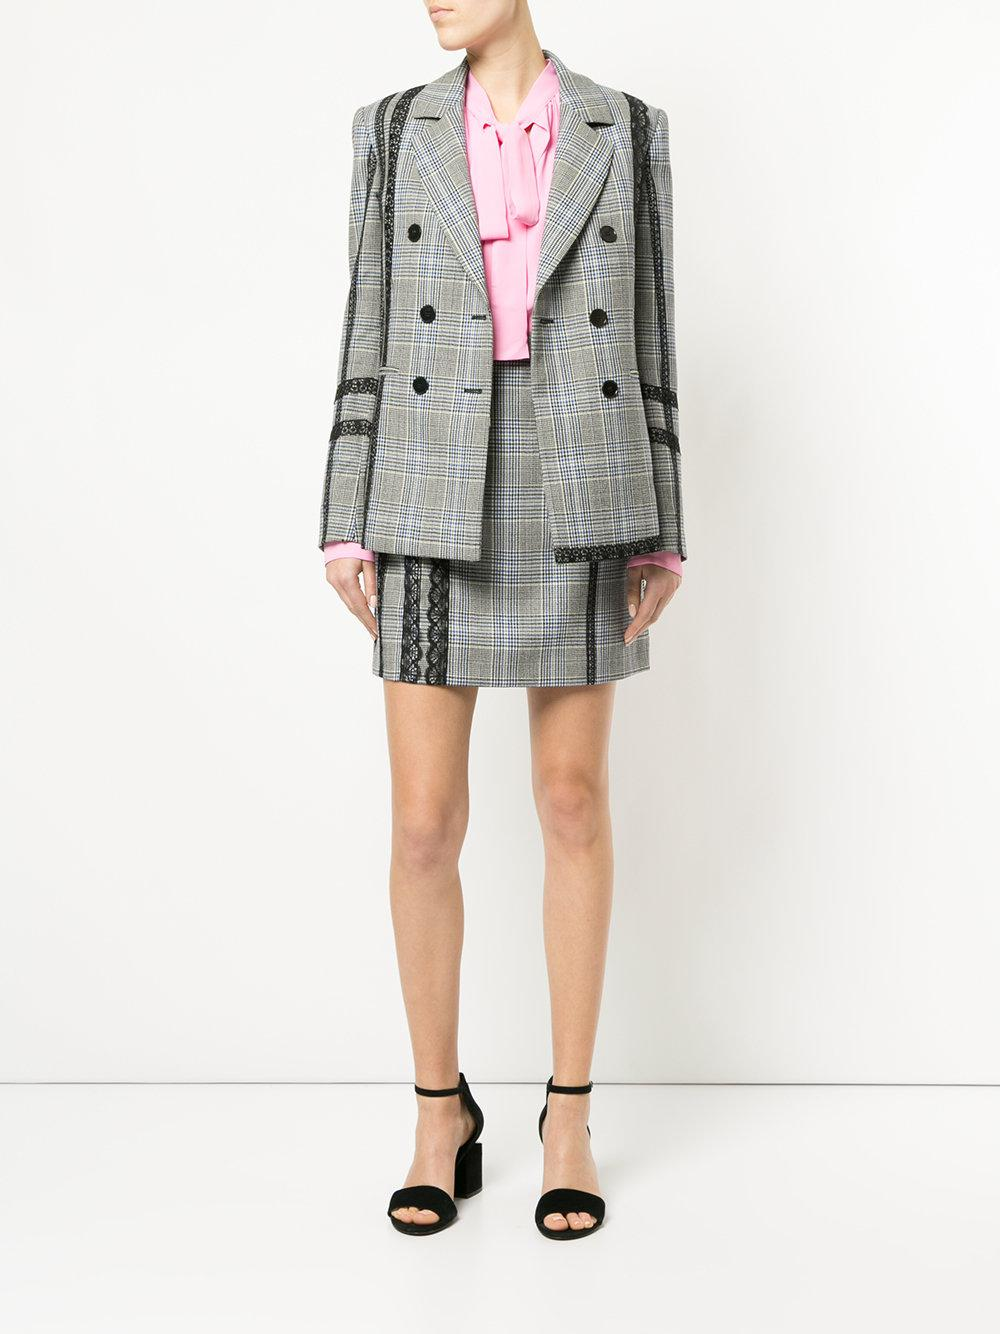 MSGM Wool Lace Trim Check Skirt in Grey (Grey)